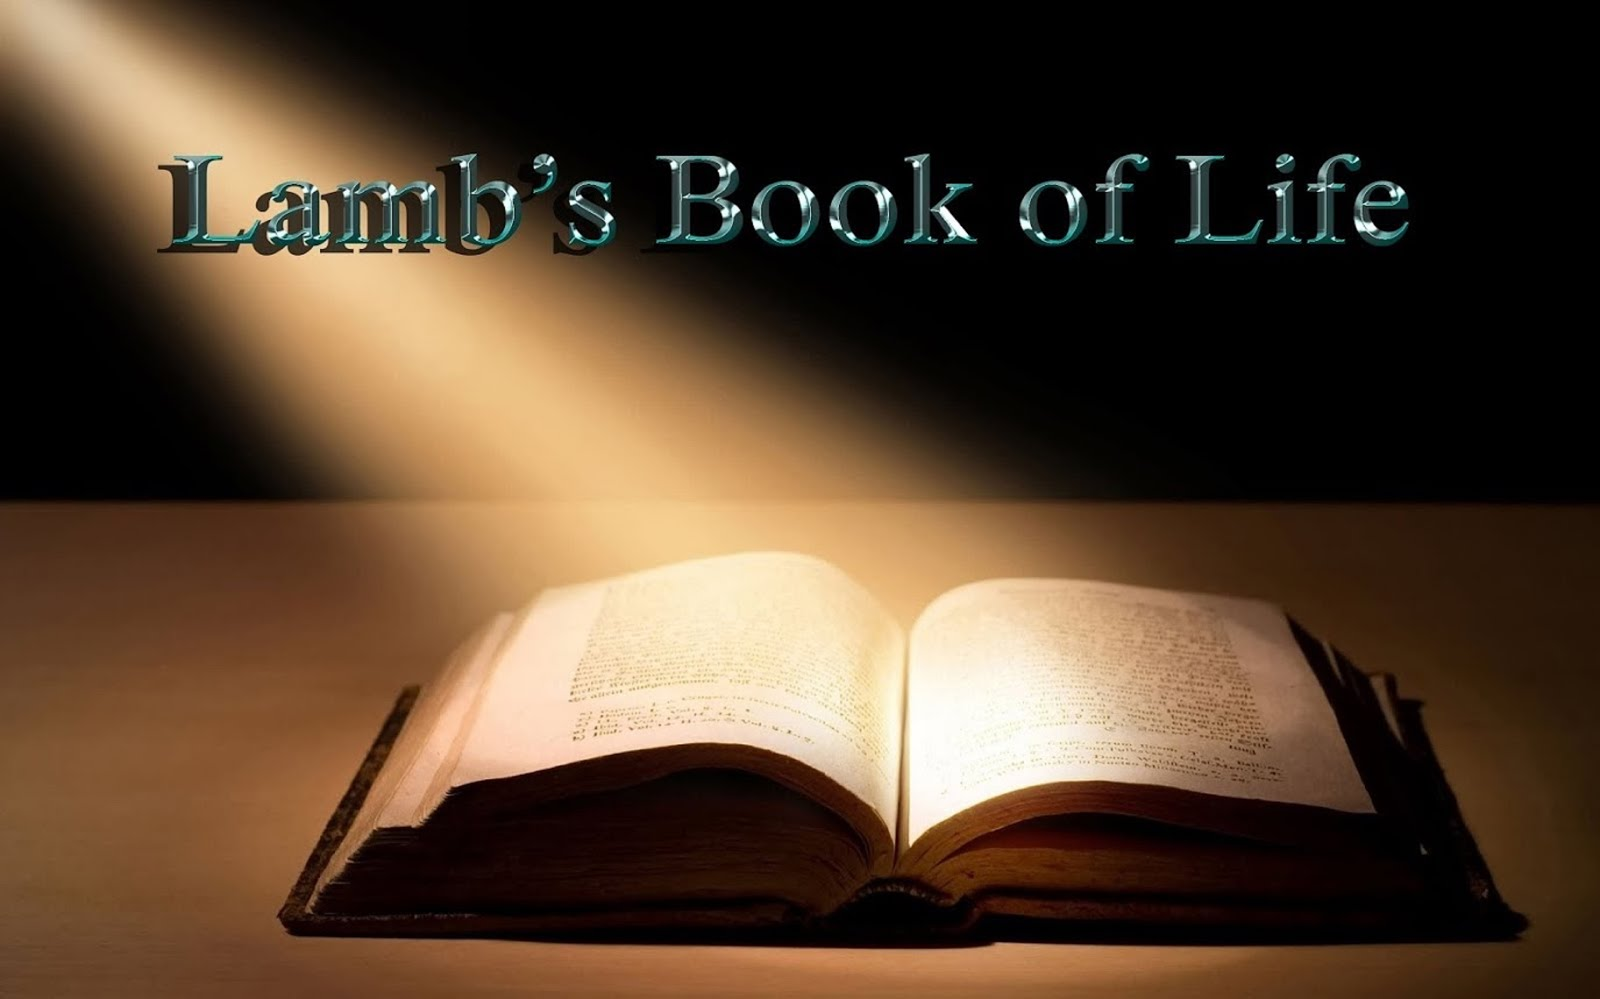 THE LAMB'S BOOK OF LIFE